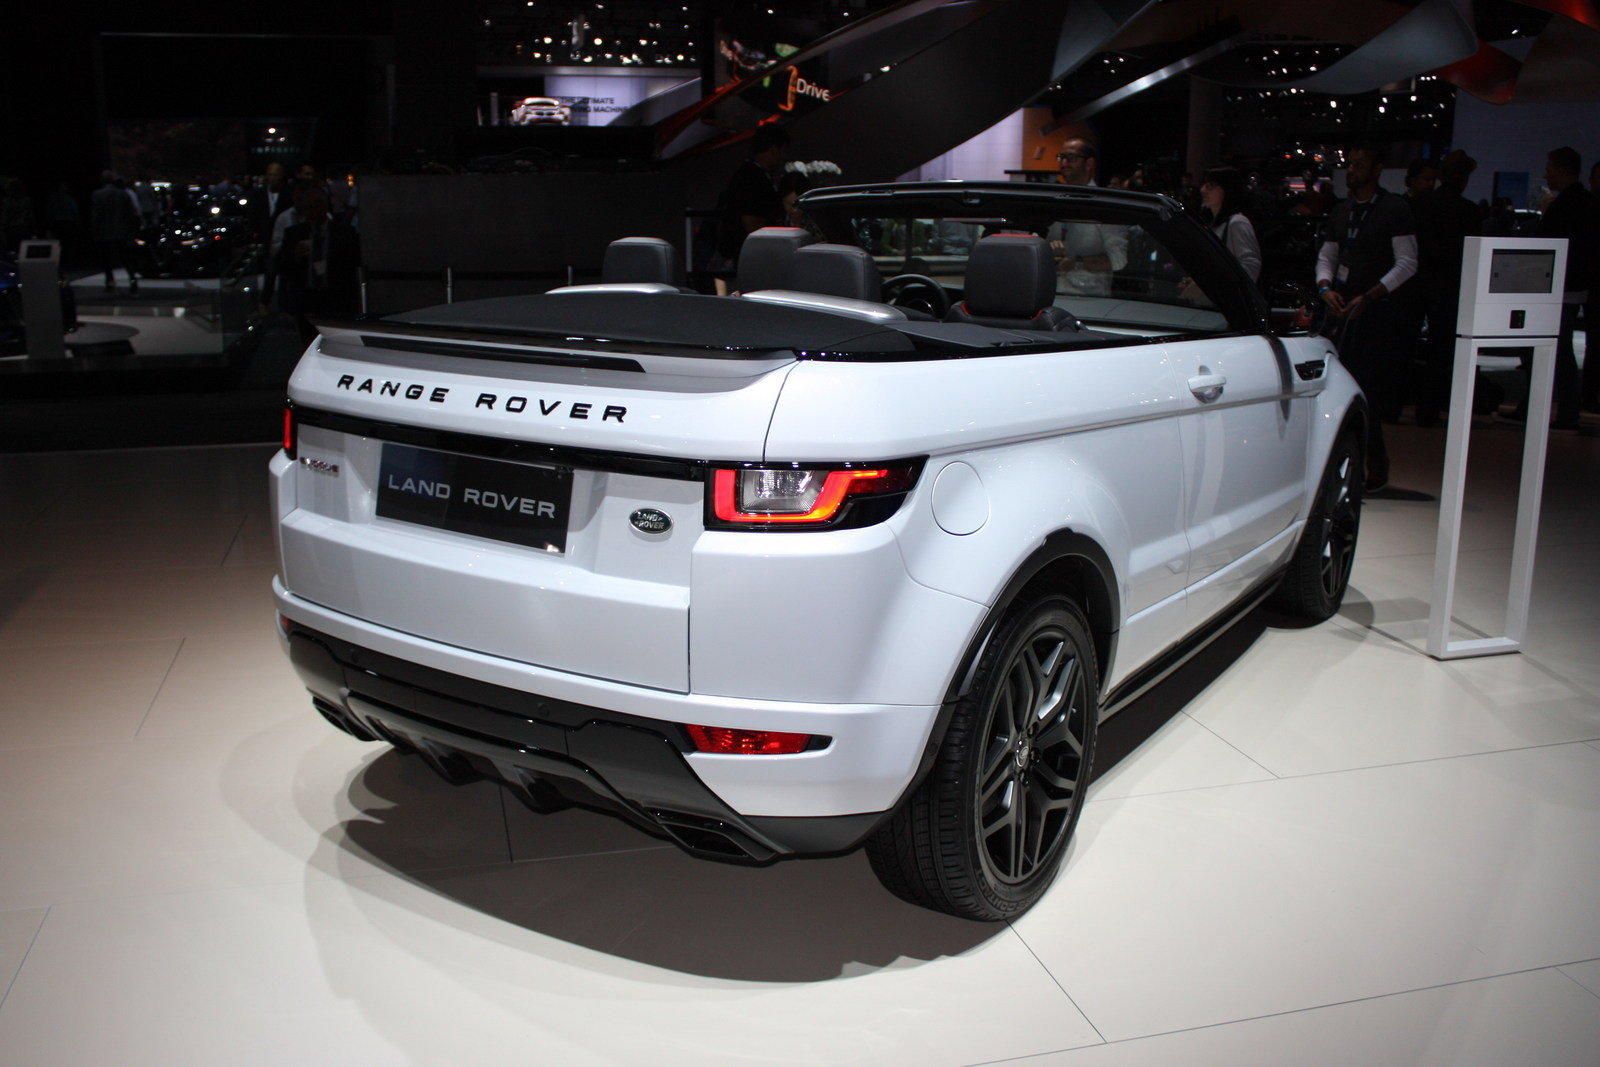 2017 land rover range rover evoque convertible picture 656793 truck review top speed. Black Bedroom Furniture Sets. Home Design Ideas